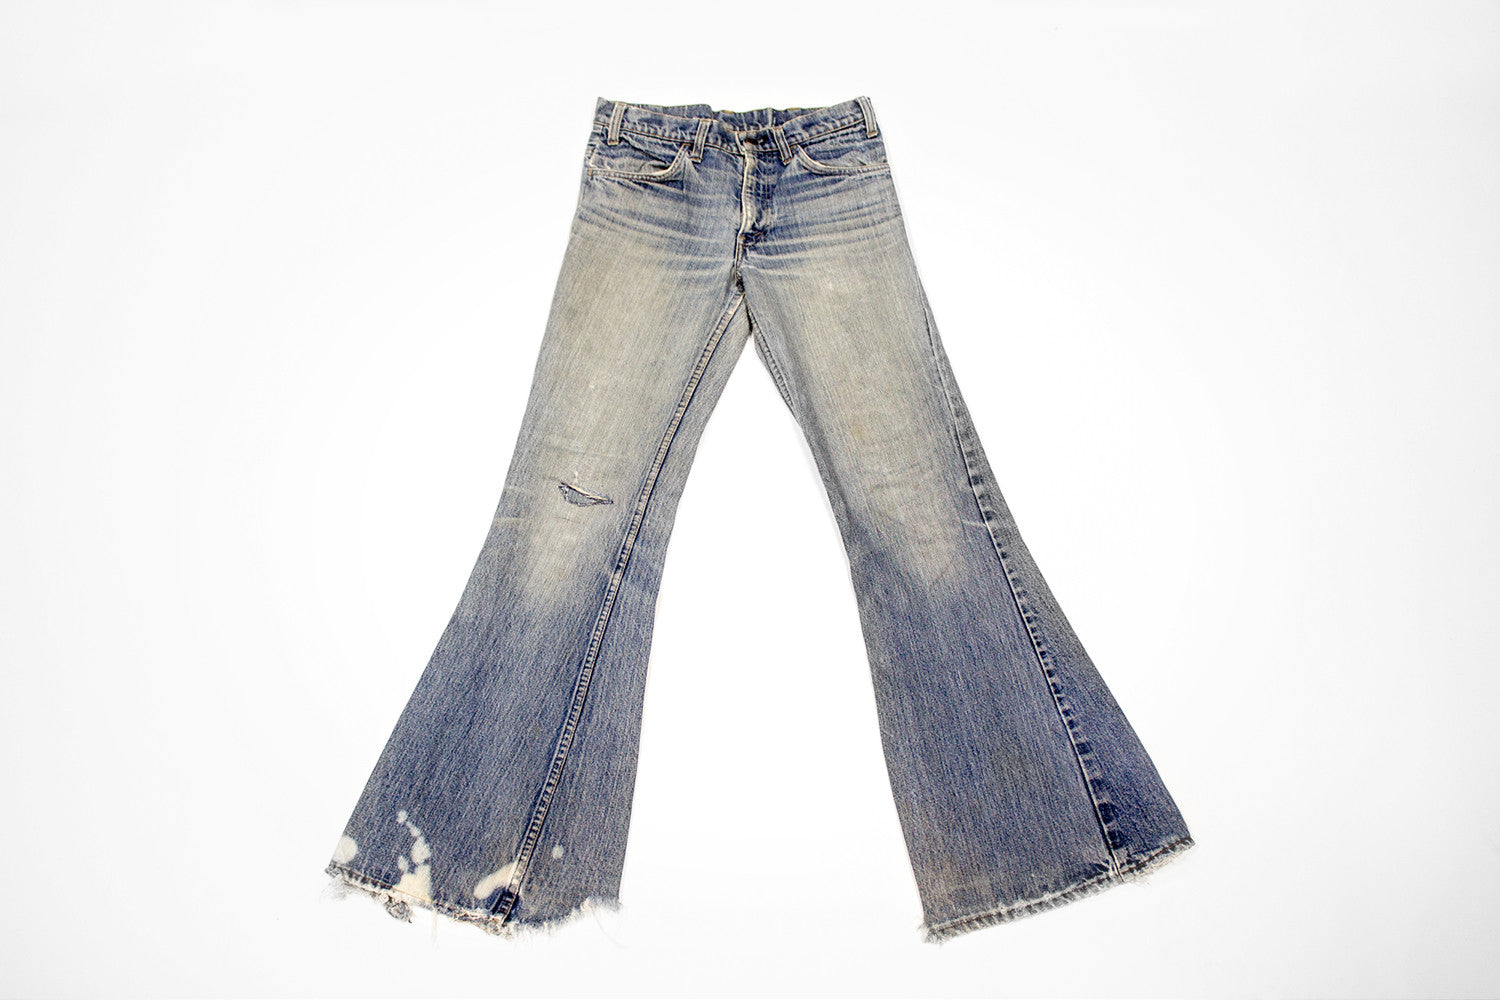 'Blue Jean Baby' Wordplay Penny Lane Bell Bottoms